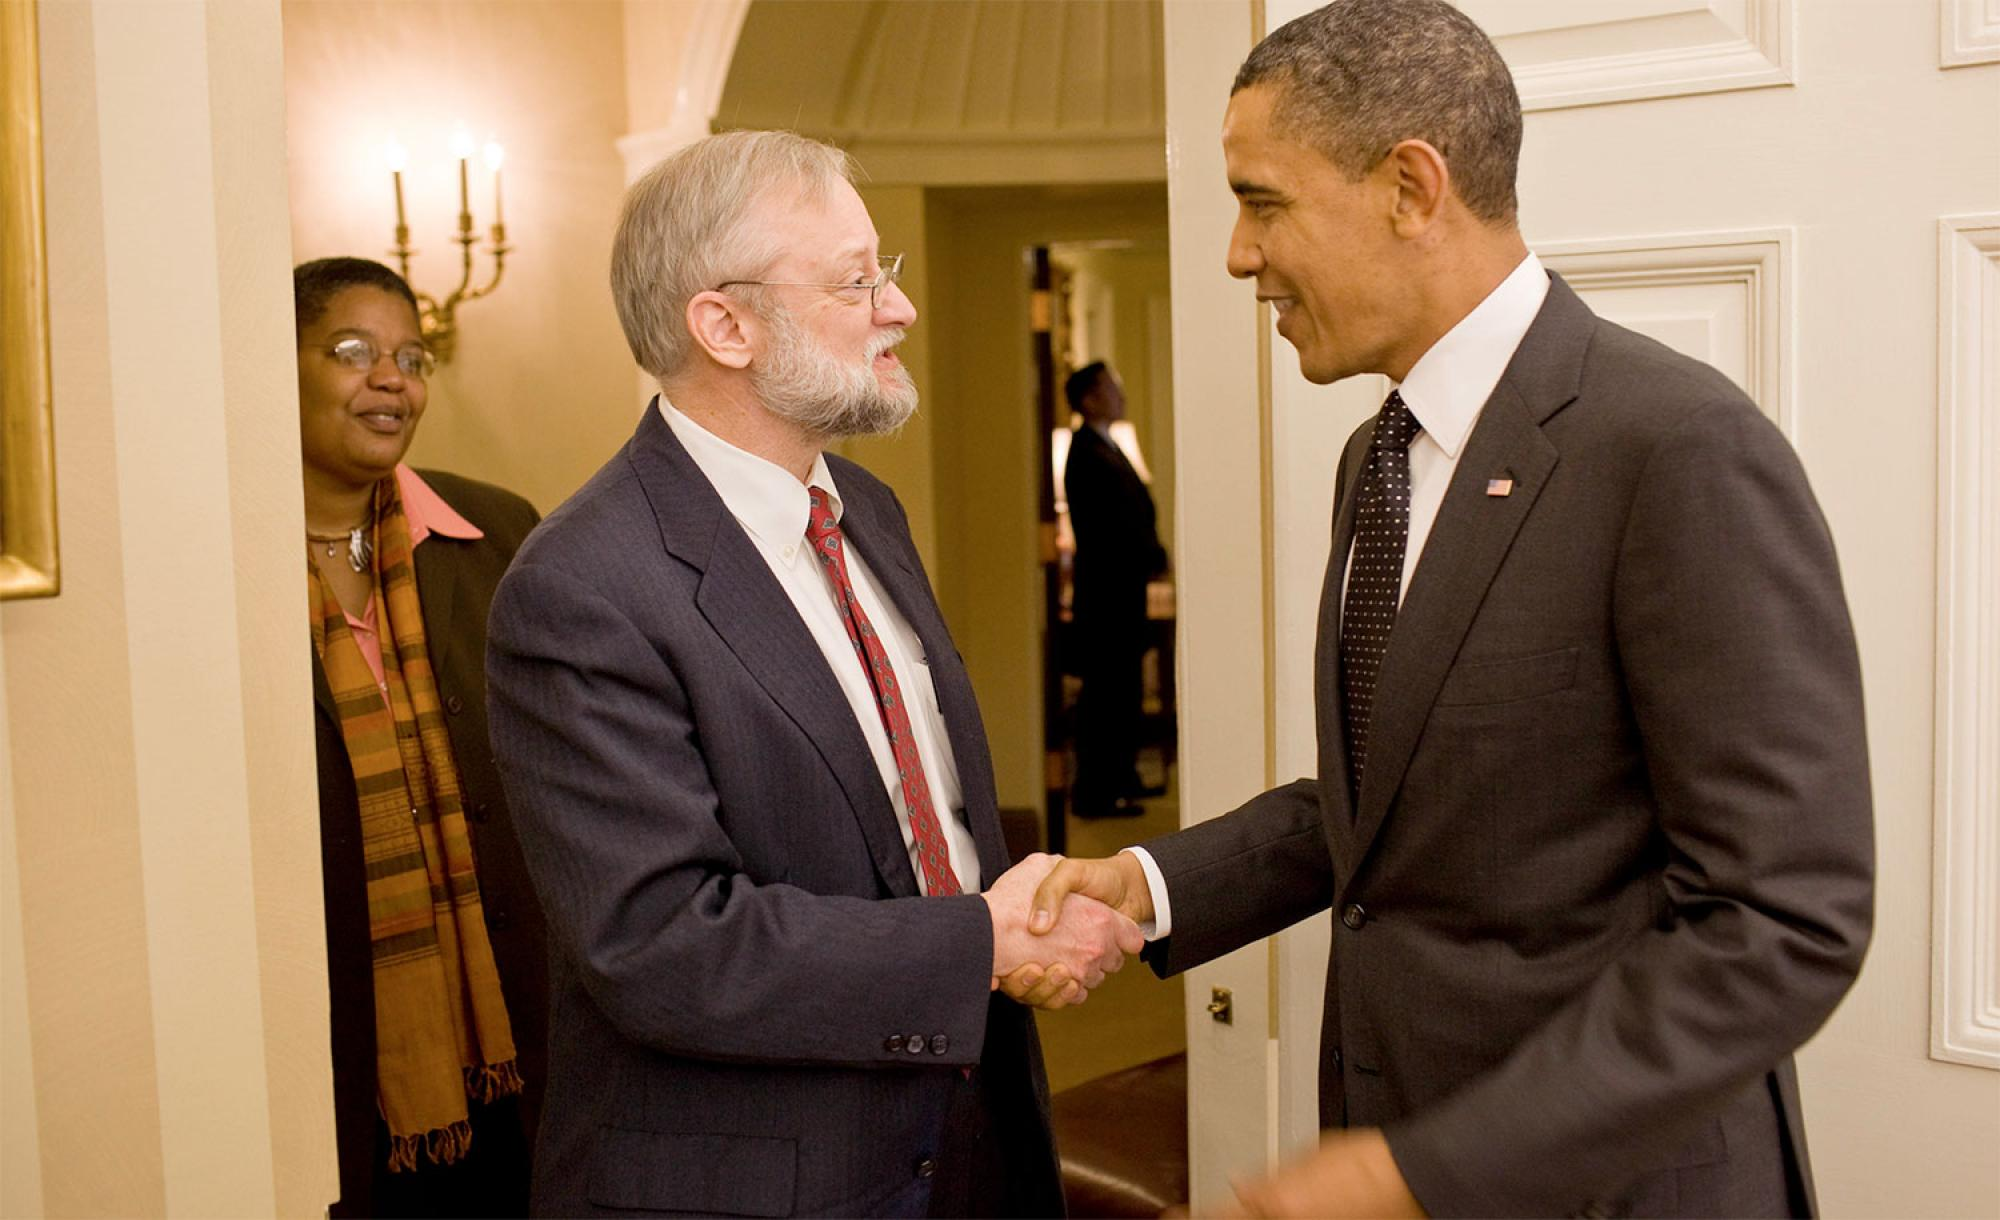 President Obama congratulates professor Jim Schwartz on the Grinnell Science Project